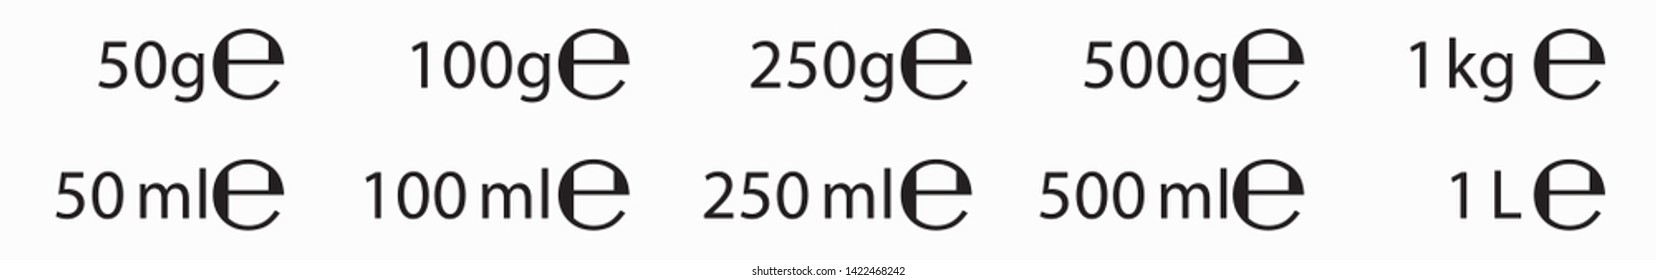 E sign (e-mark) for estimated weights and volumes. Vector symbol for packaging and labels used in the European Union for prepacked foods, drinks and cosmetics in different grams and milliliters.